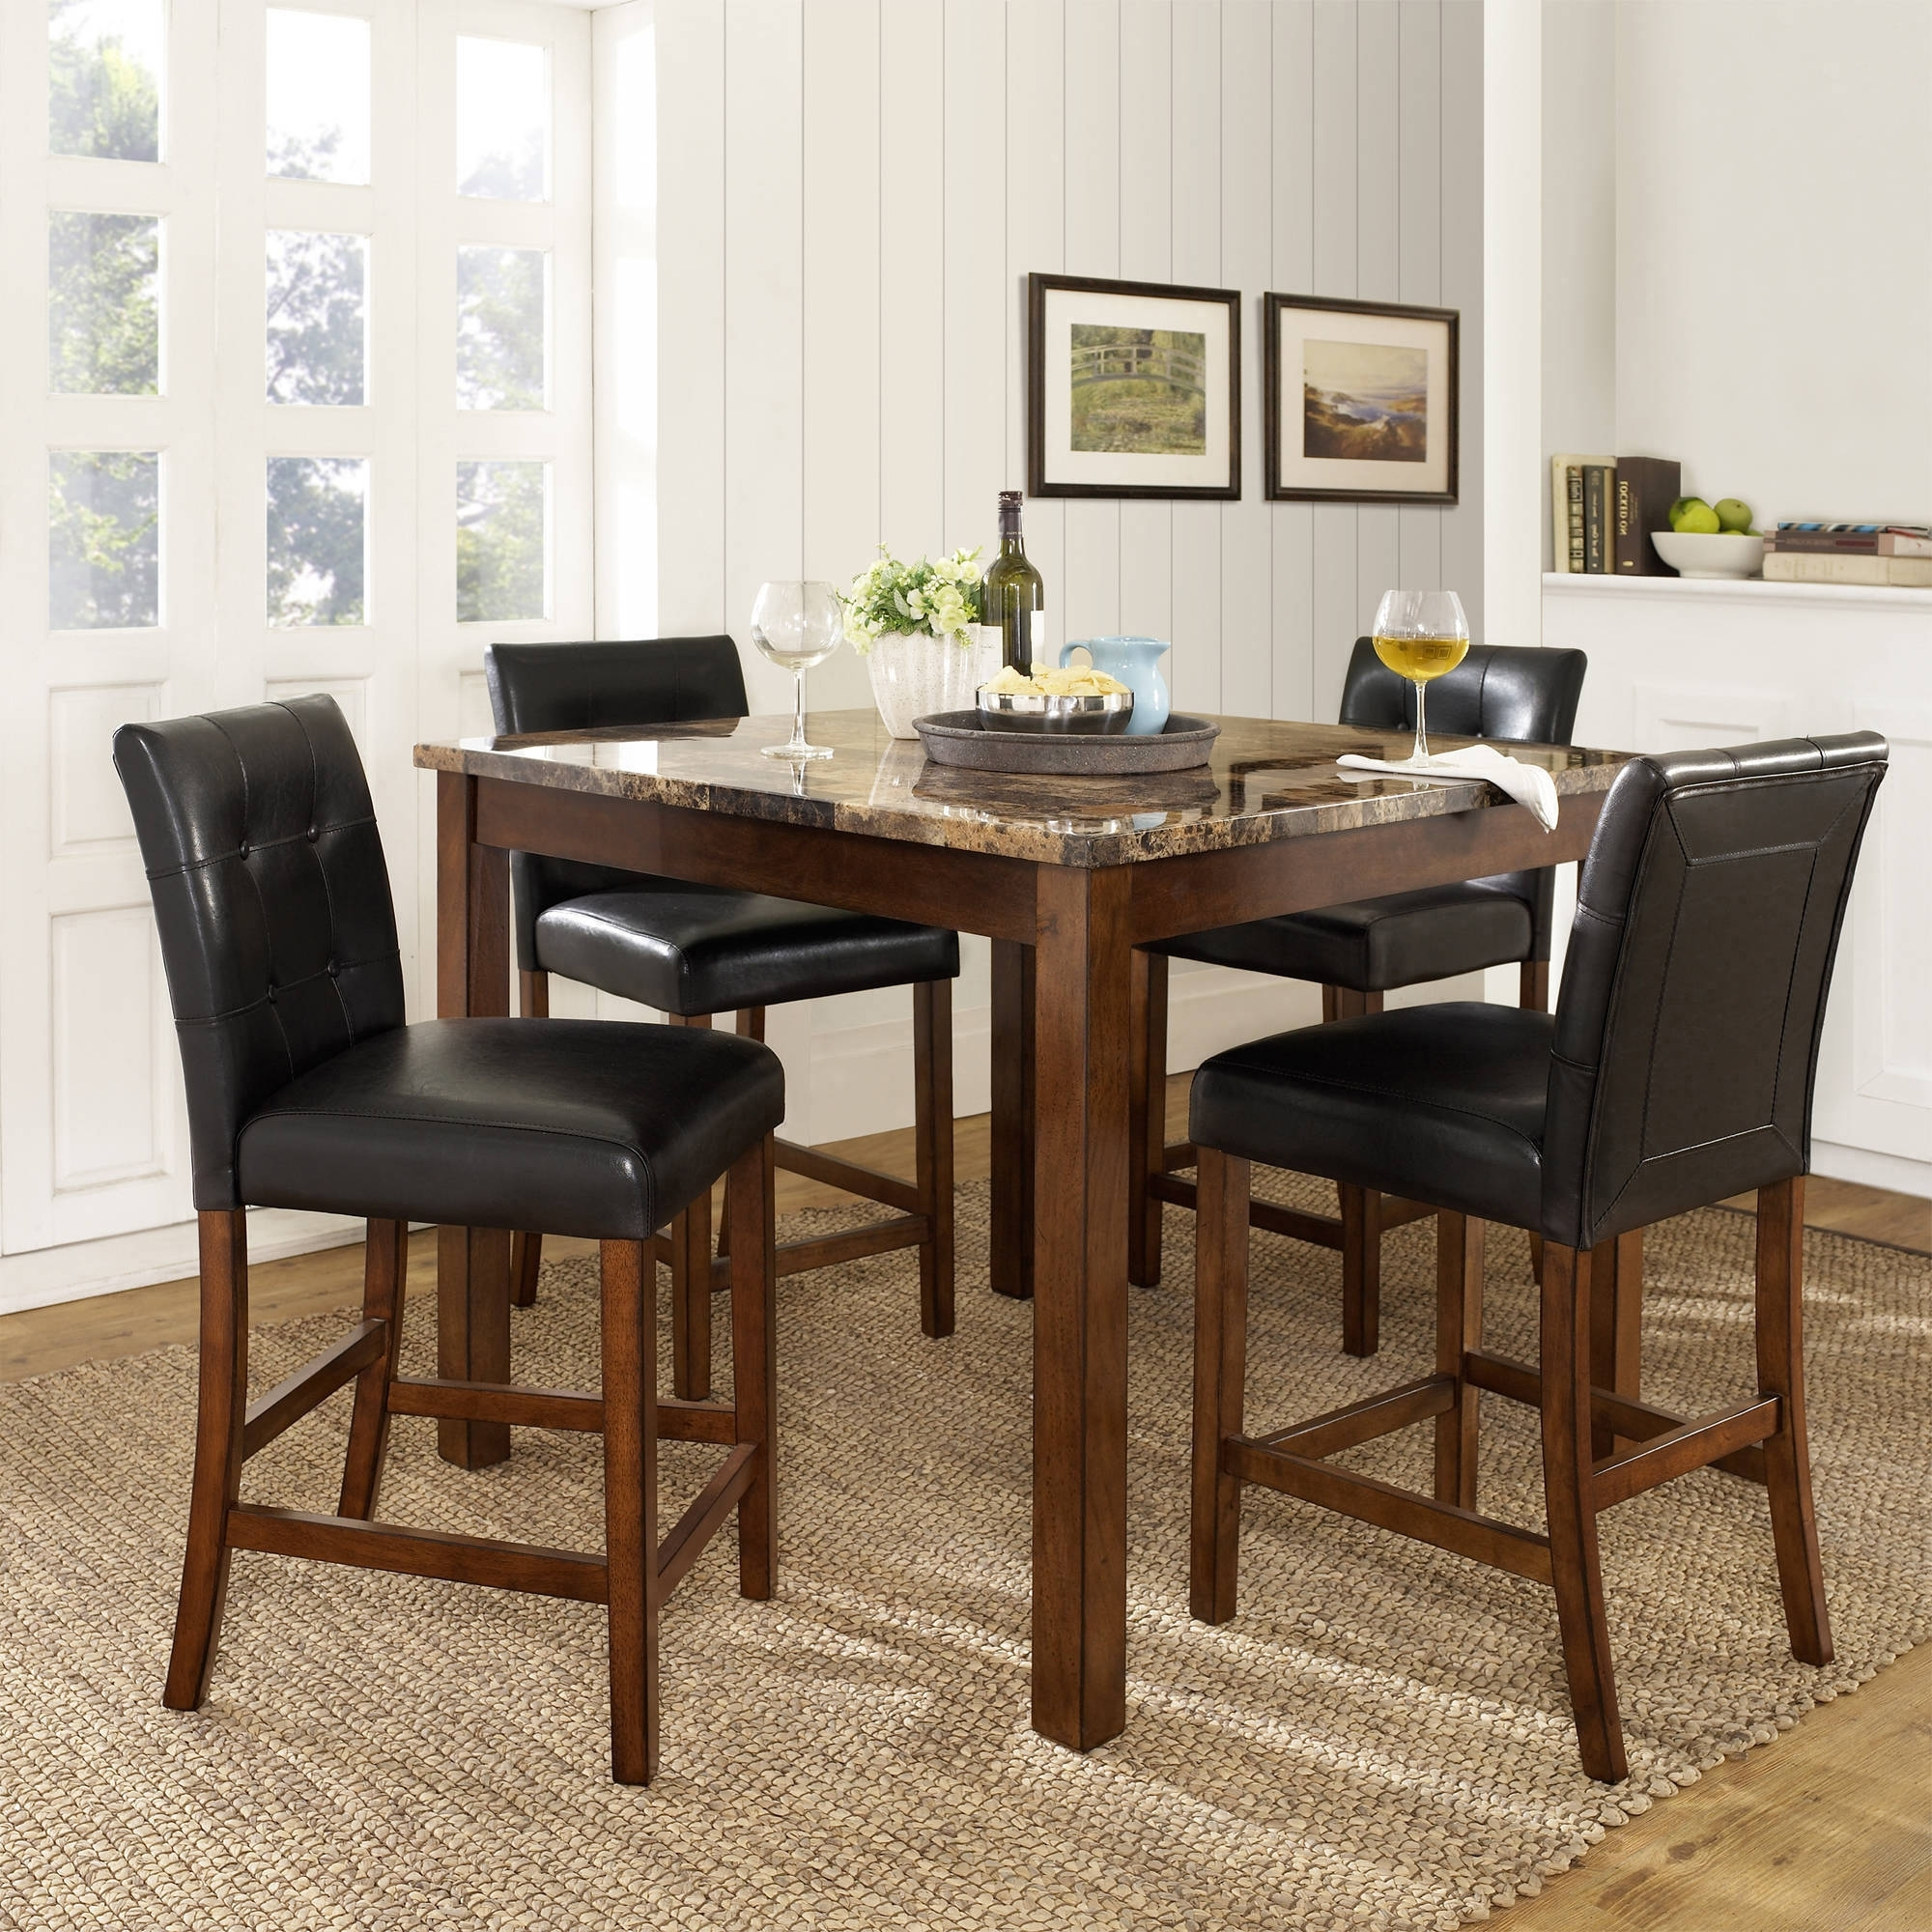 "Famous Mainstays 5 Piece Glass And Metal Dining Set, 42"" Round Tabletop Inside Cheap Dining Tables Sets (View 14 of 25)"